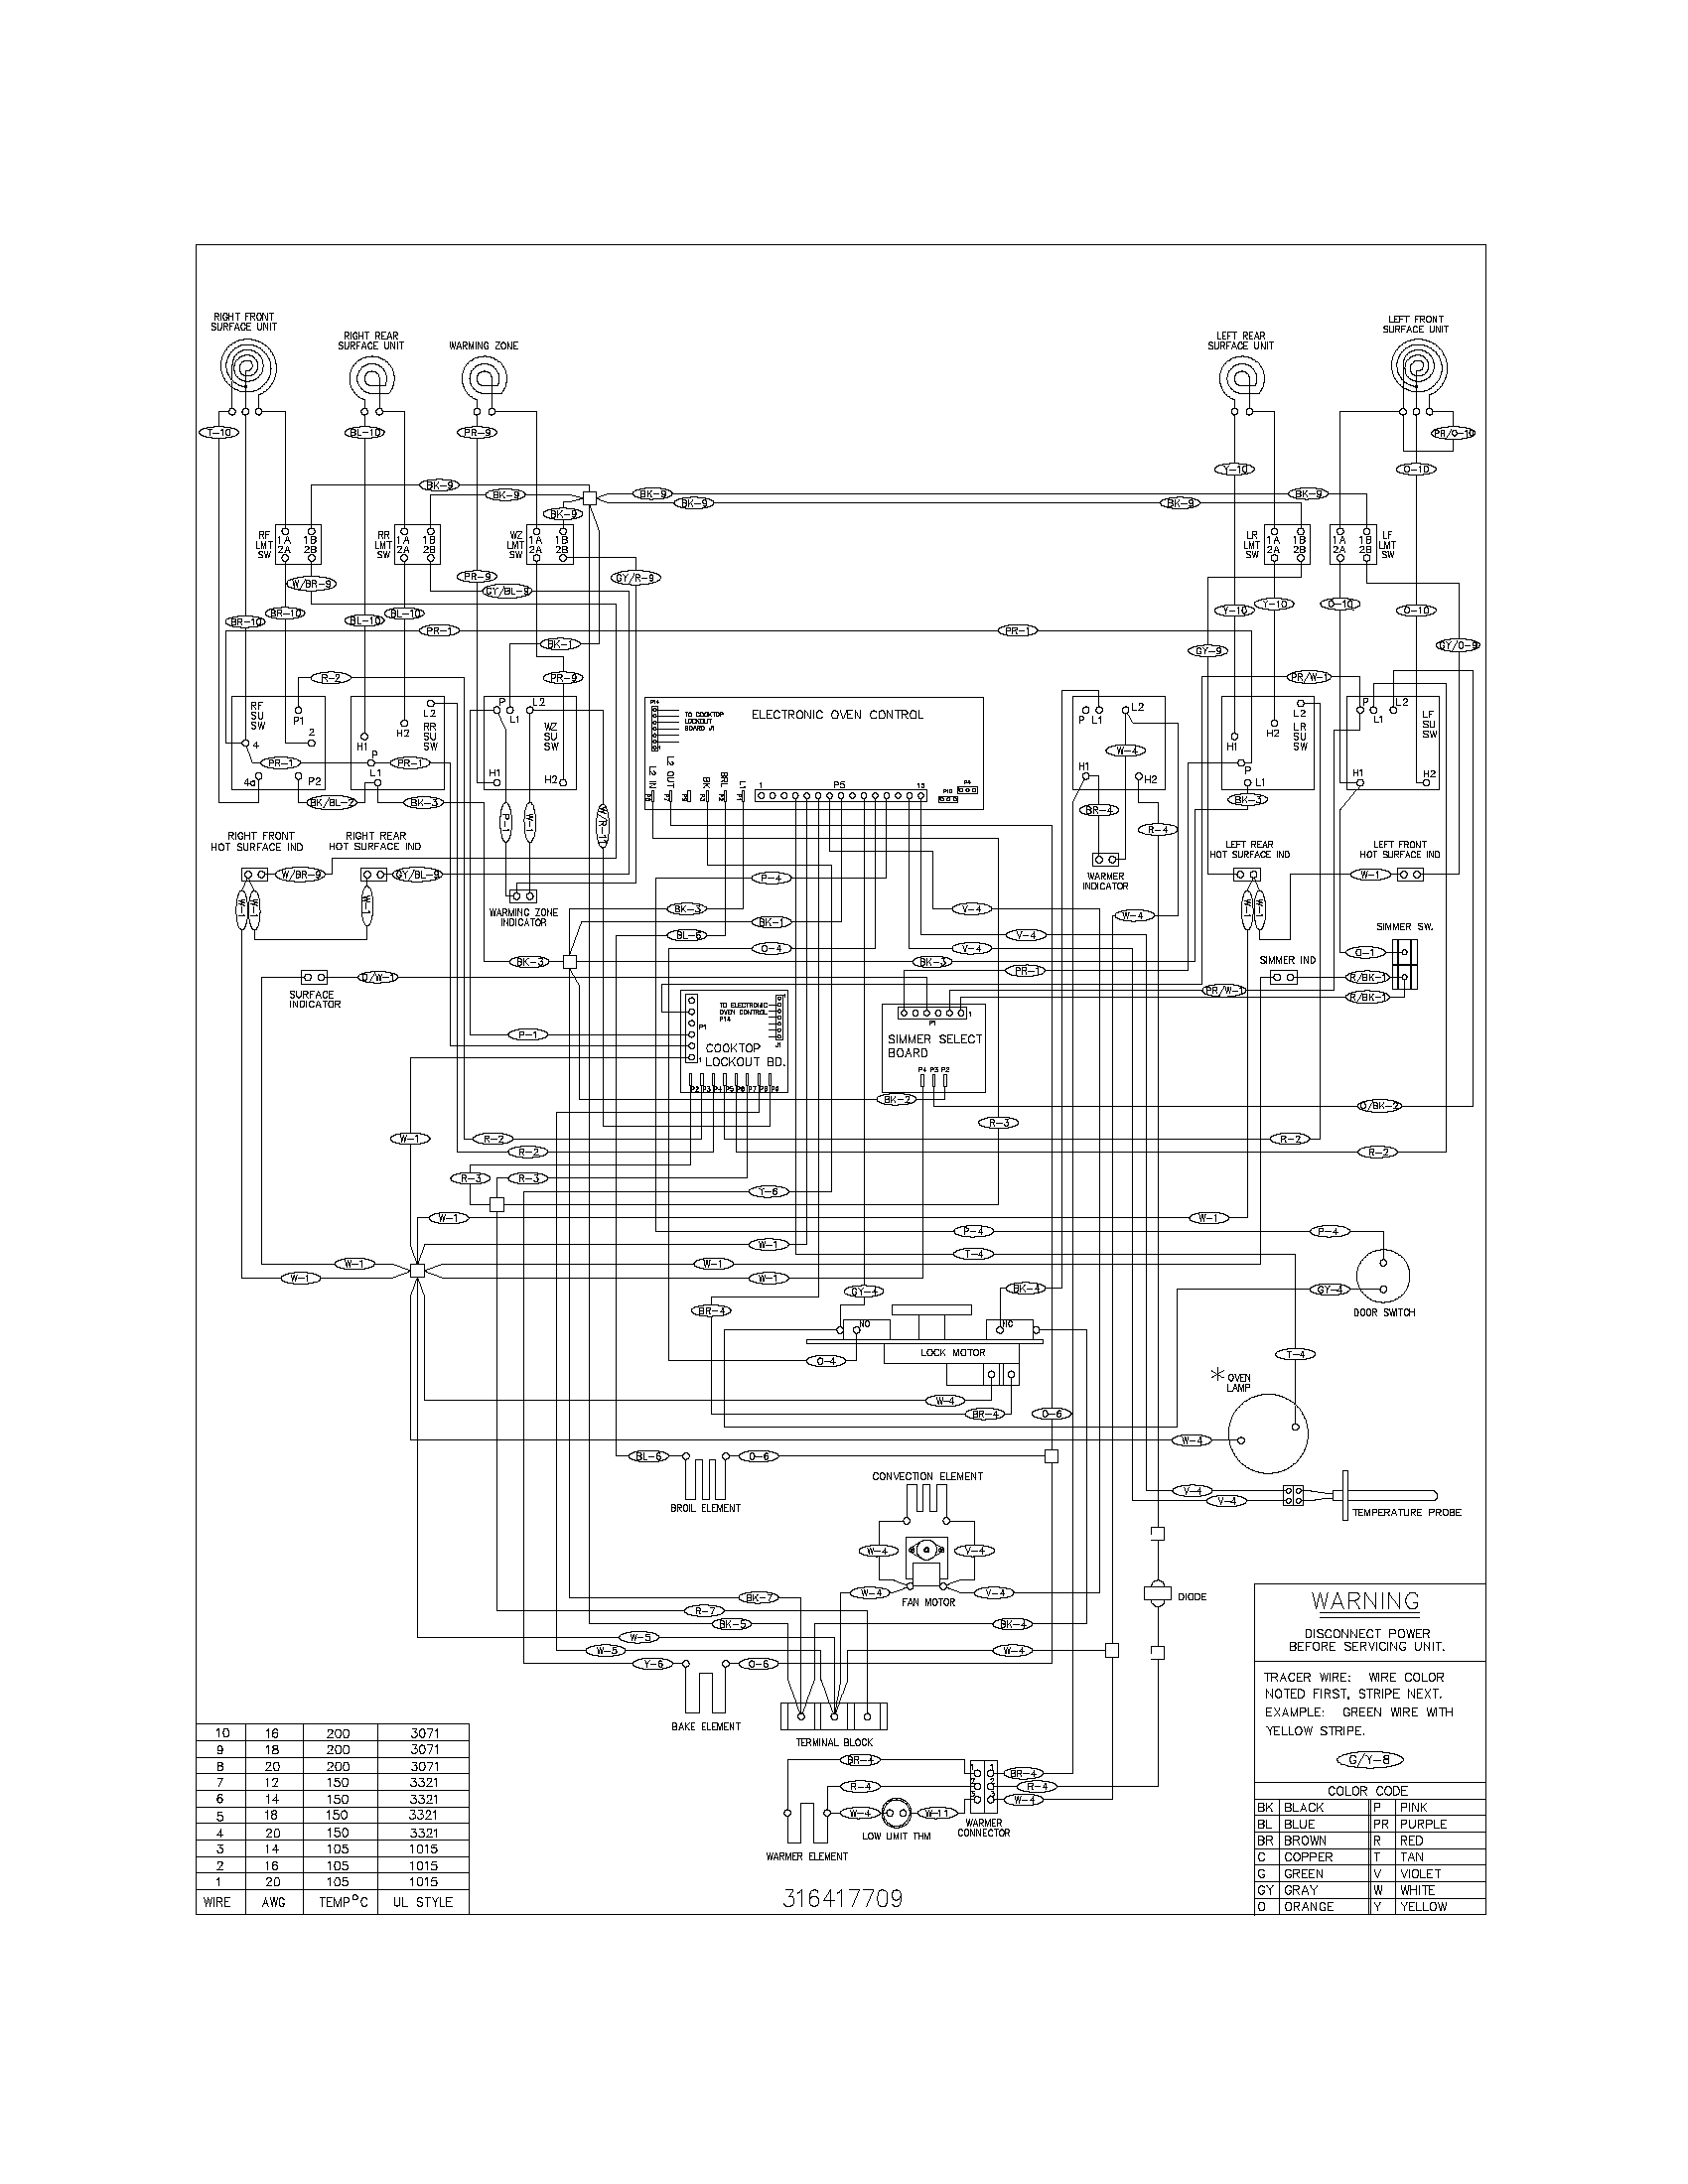 hobart dishwasher wiring diagram ft 900 3 switch wiring honda ft 500 wiring  diagram 3-Way Switch Wiring Diagram